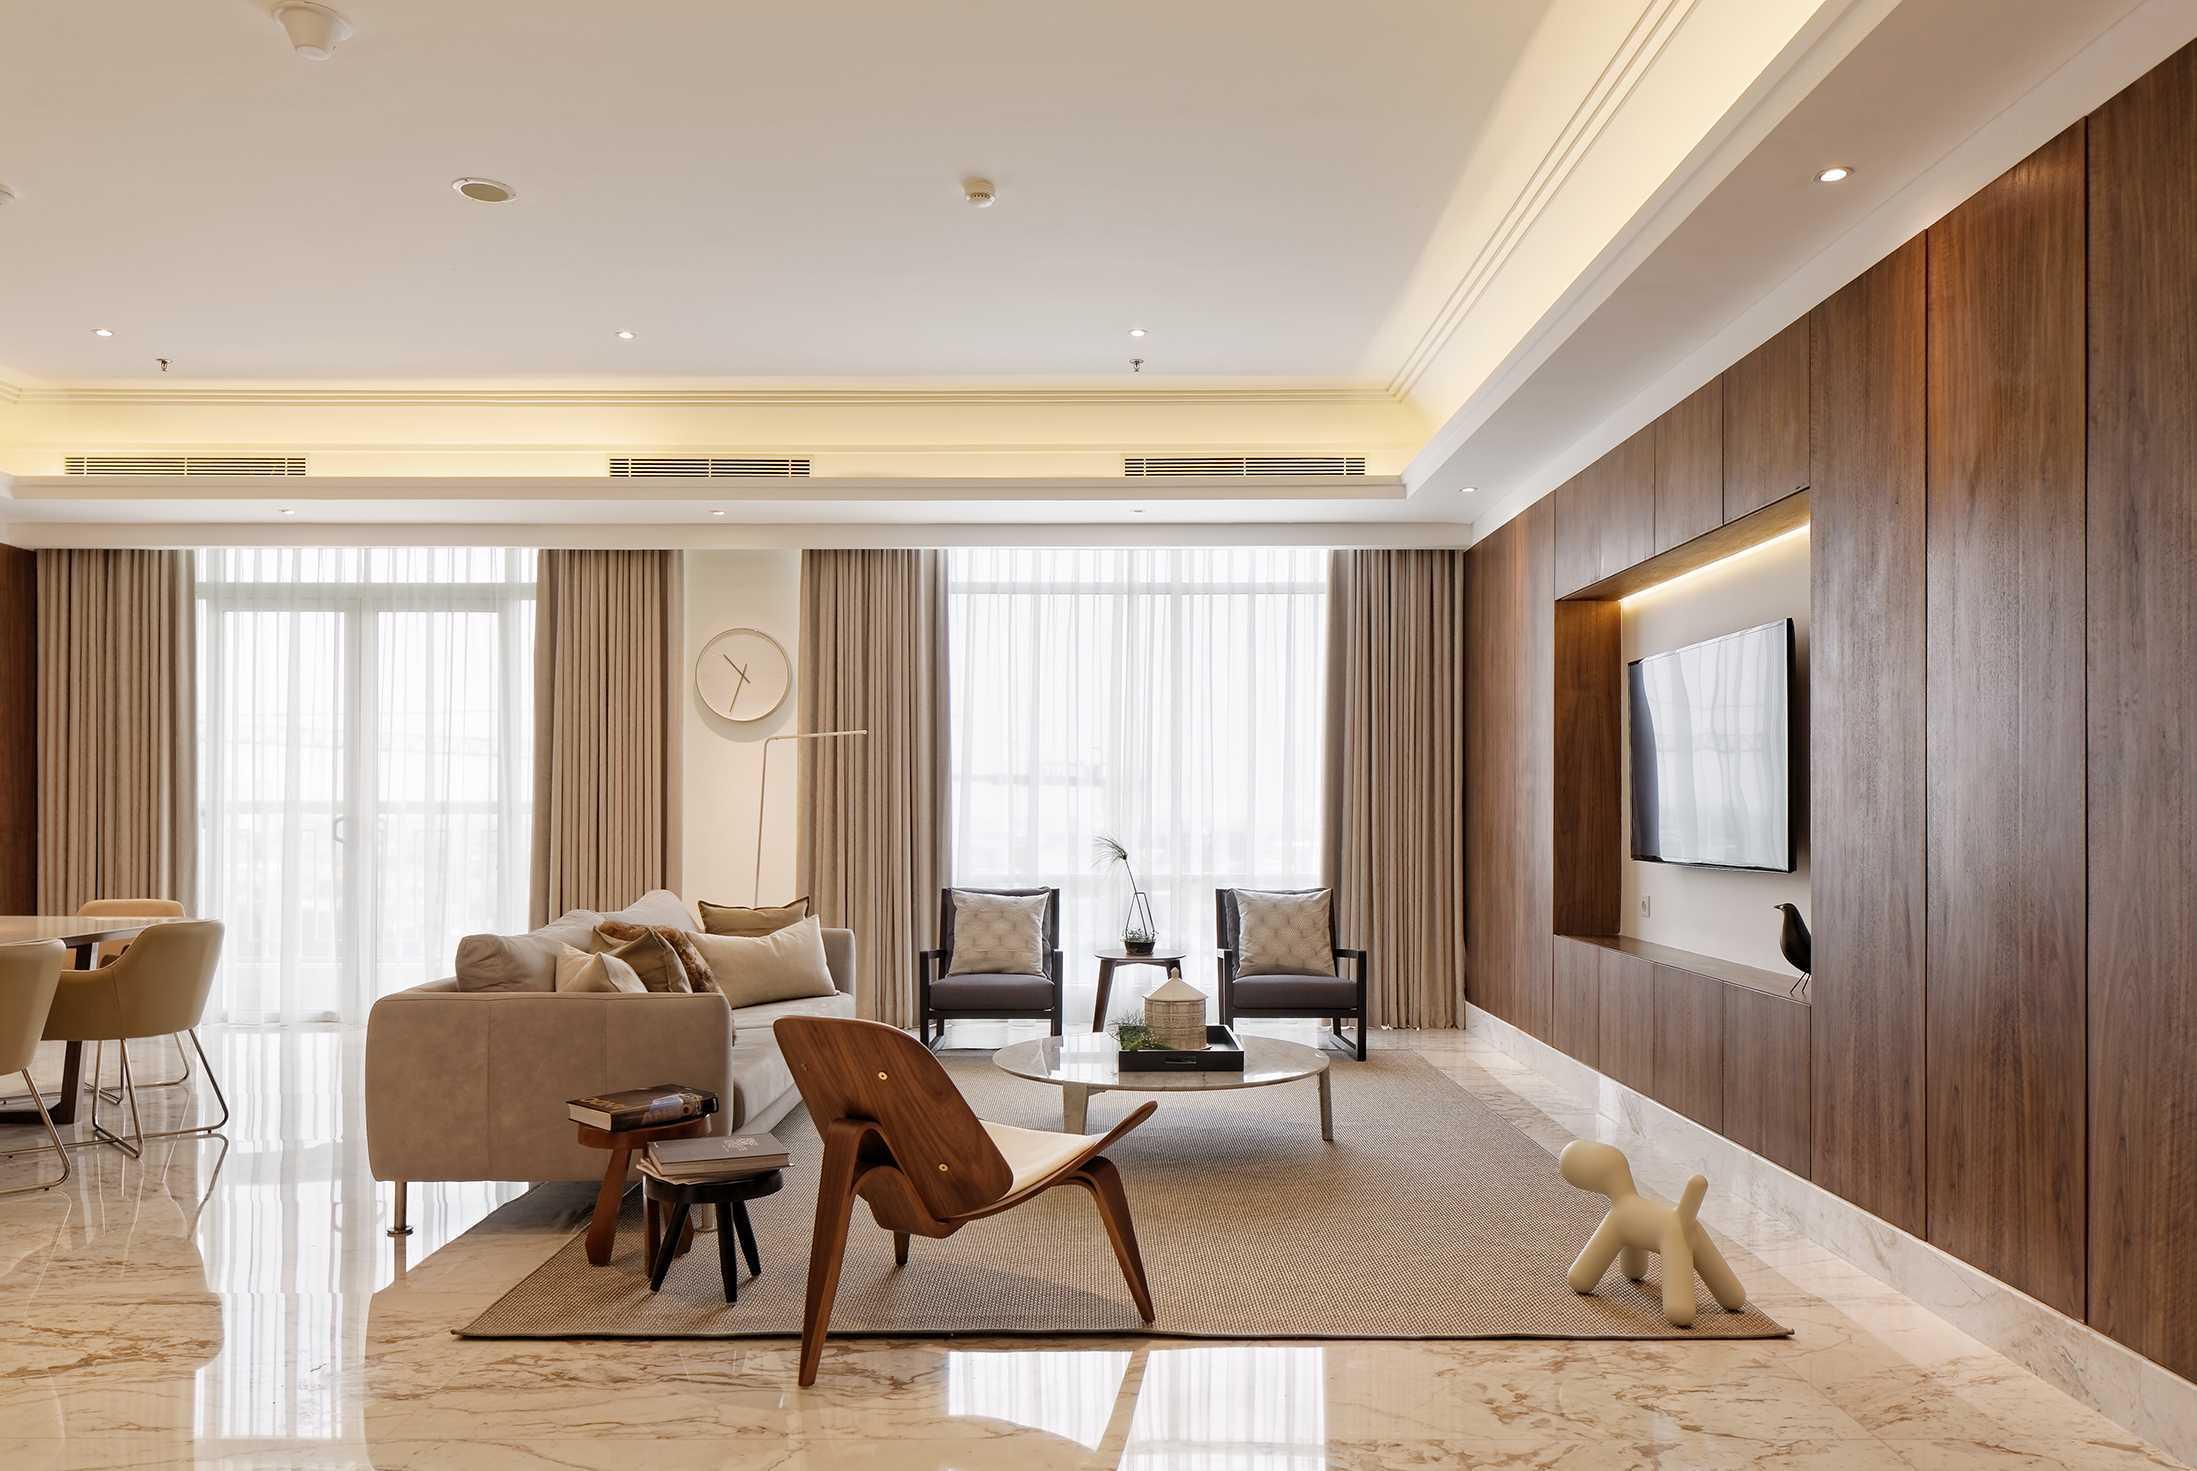 Sontani Partners 11A Residence South Jakarta, Indonesia South Jakarta, Indonesia Living Room Contemporary  21394